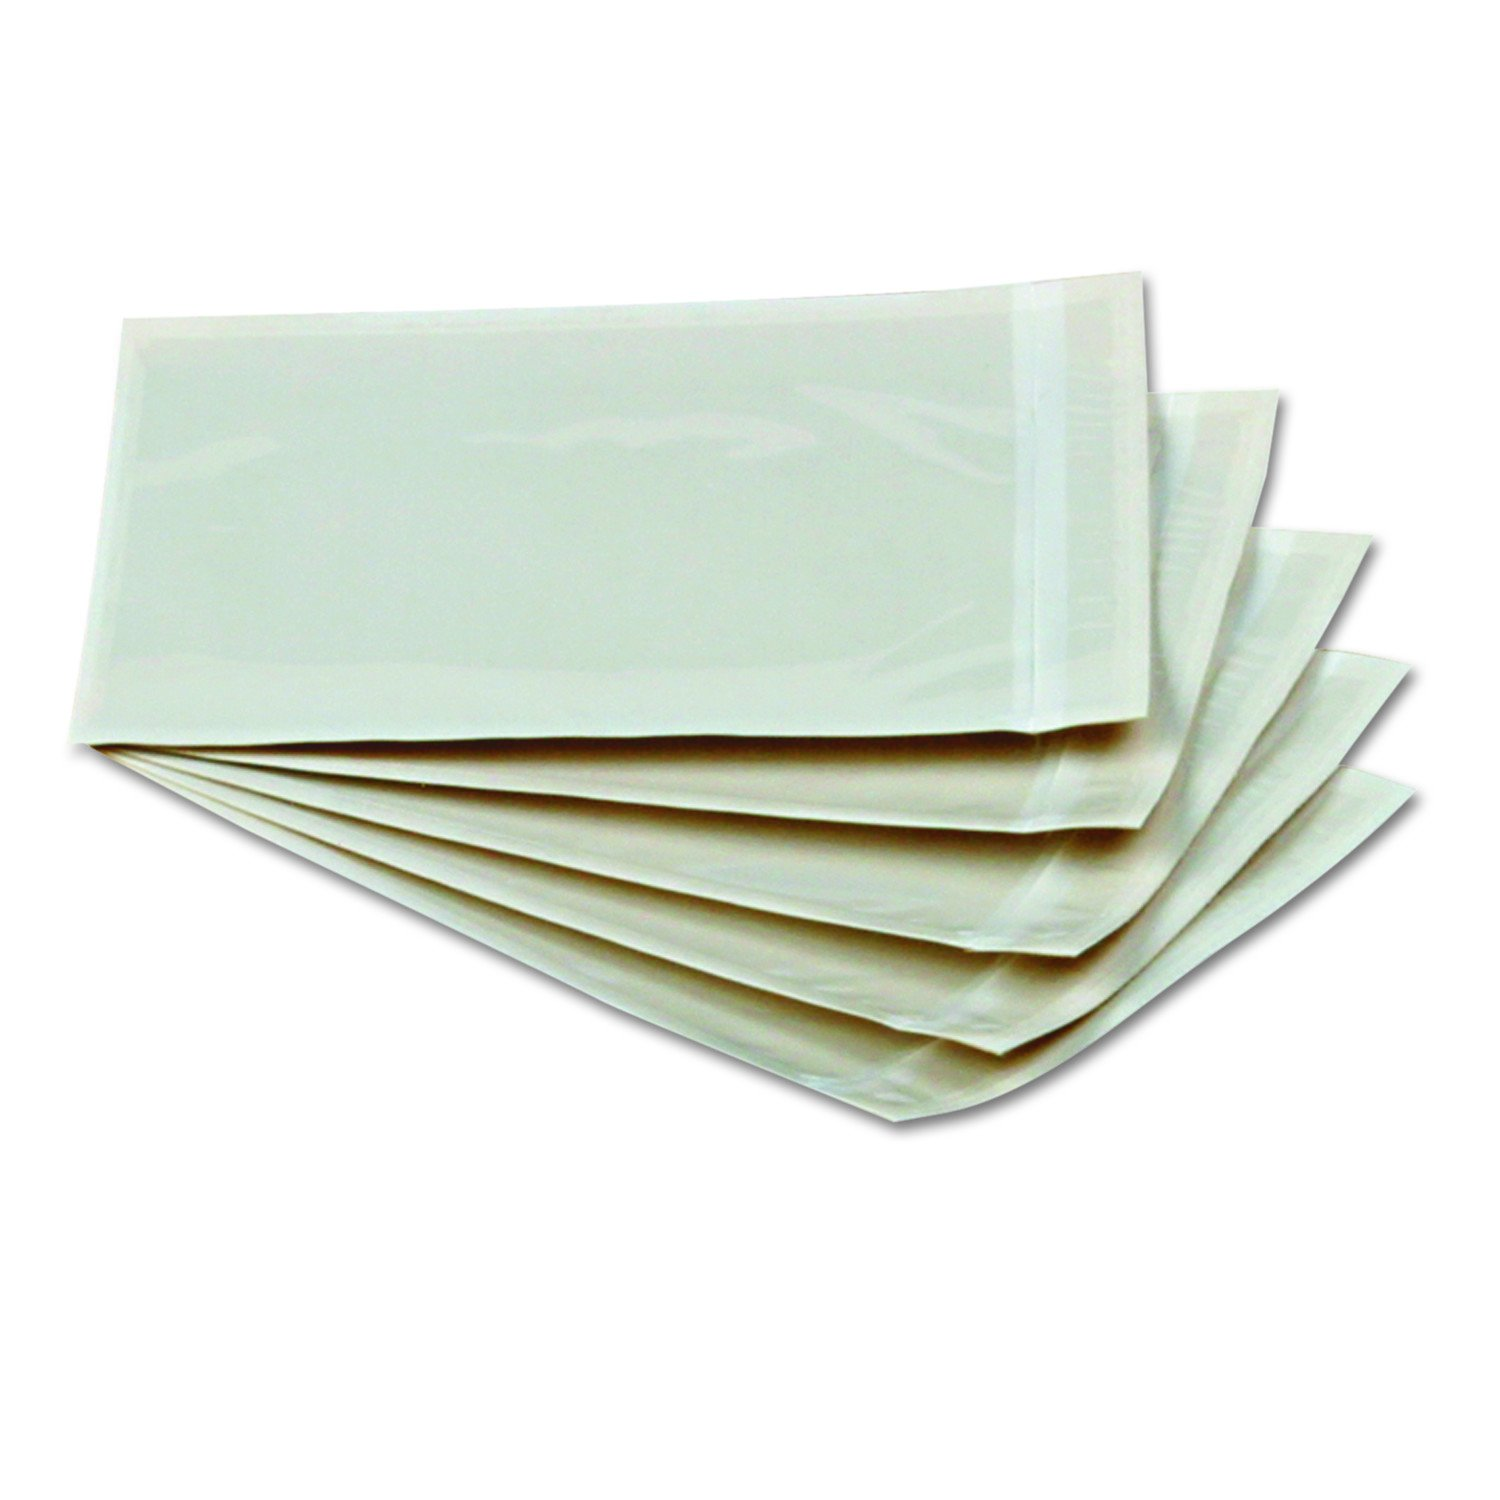 Quality Park 46996 Clear Front Self Adhesive Packing List Envelope, 6 x 4 1/2 (Box of 1000)